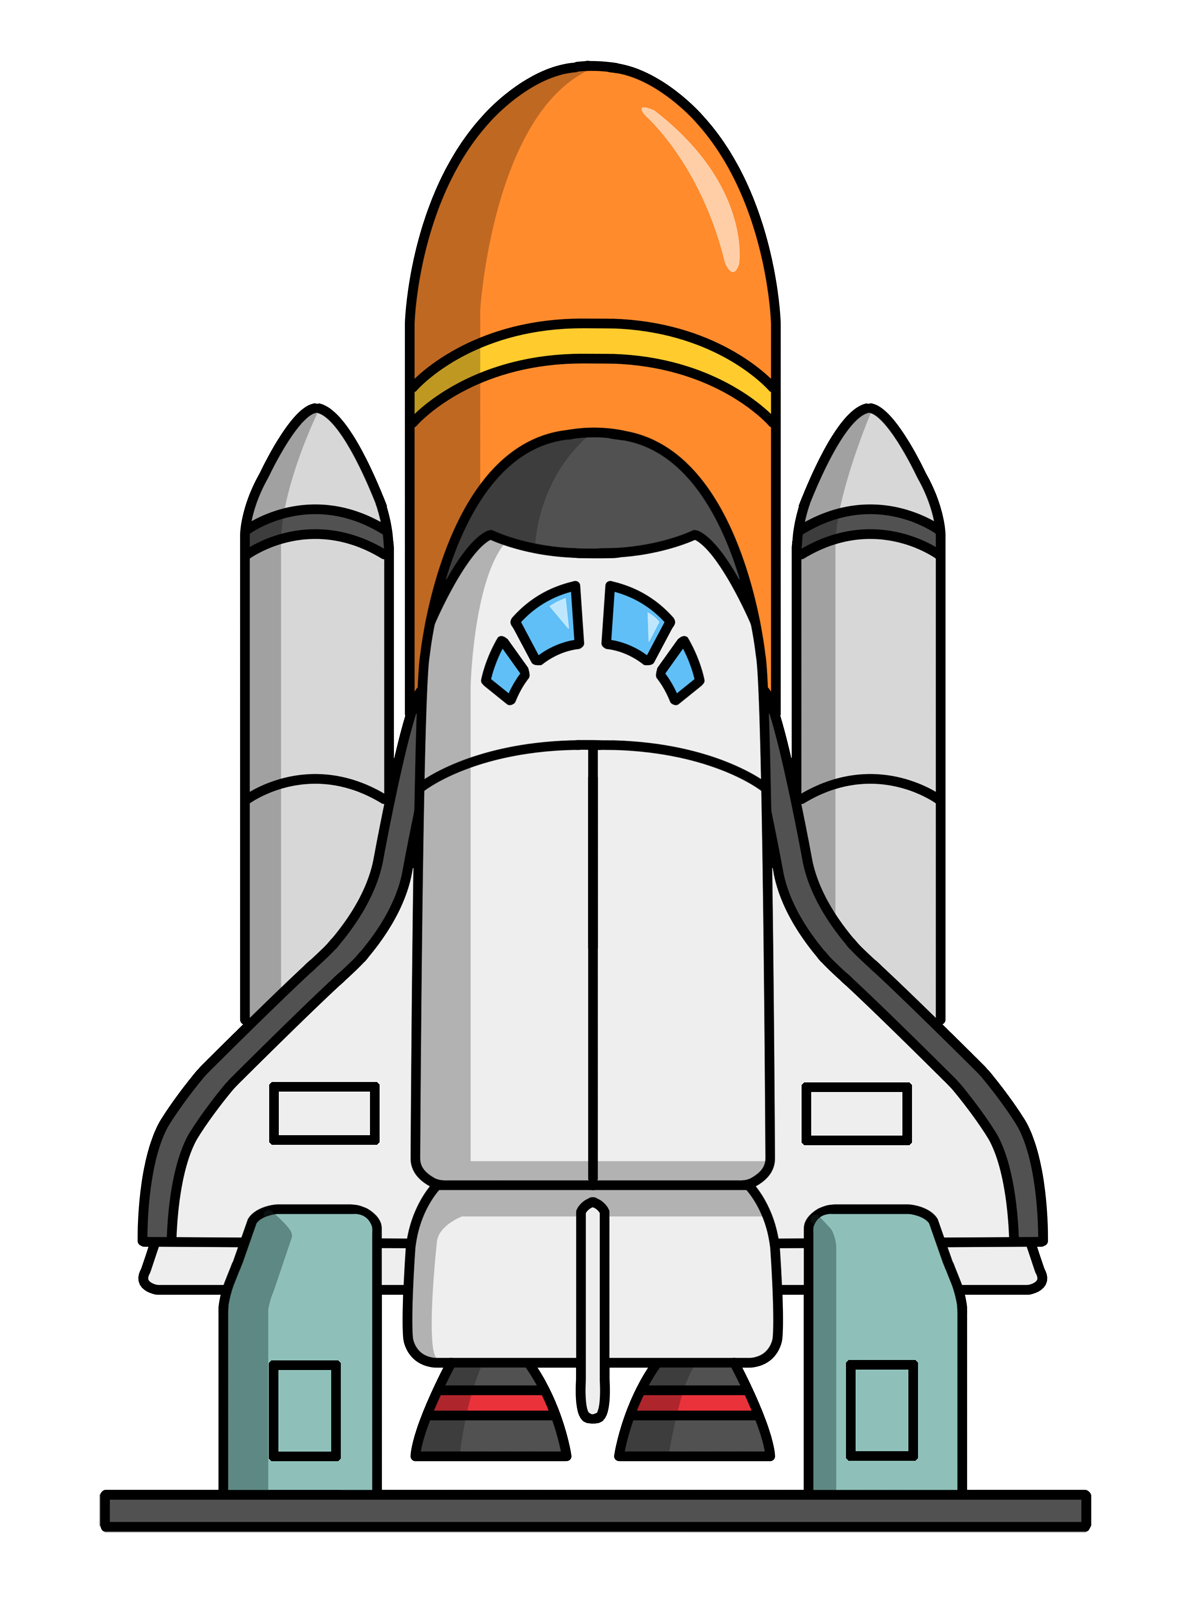 Free Space Shuttle Clipart, Download Free Clip Art, Free.